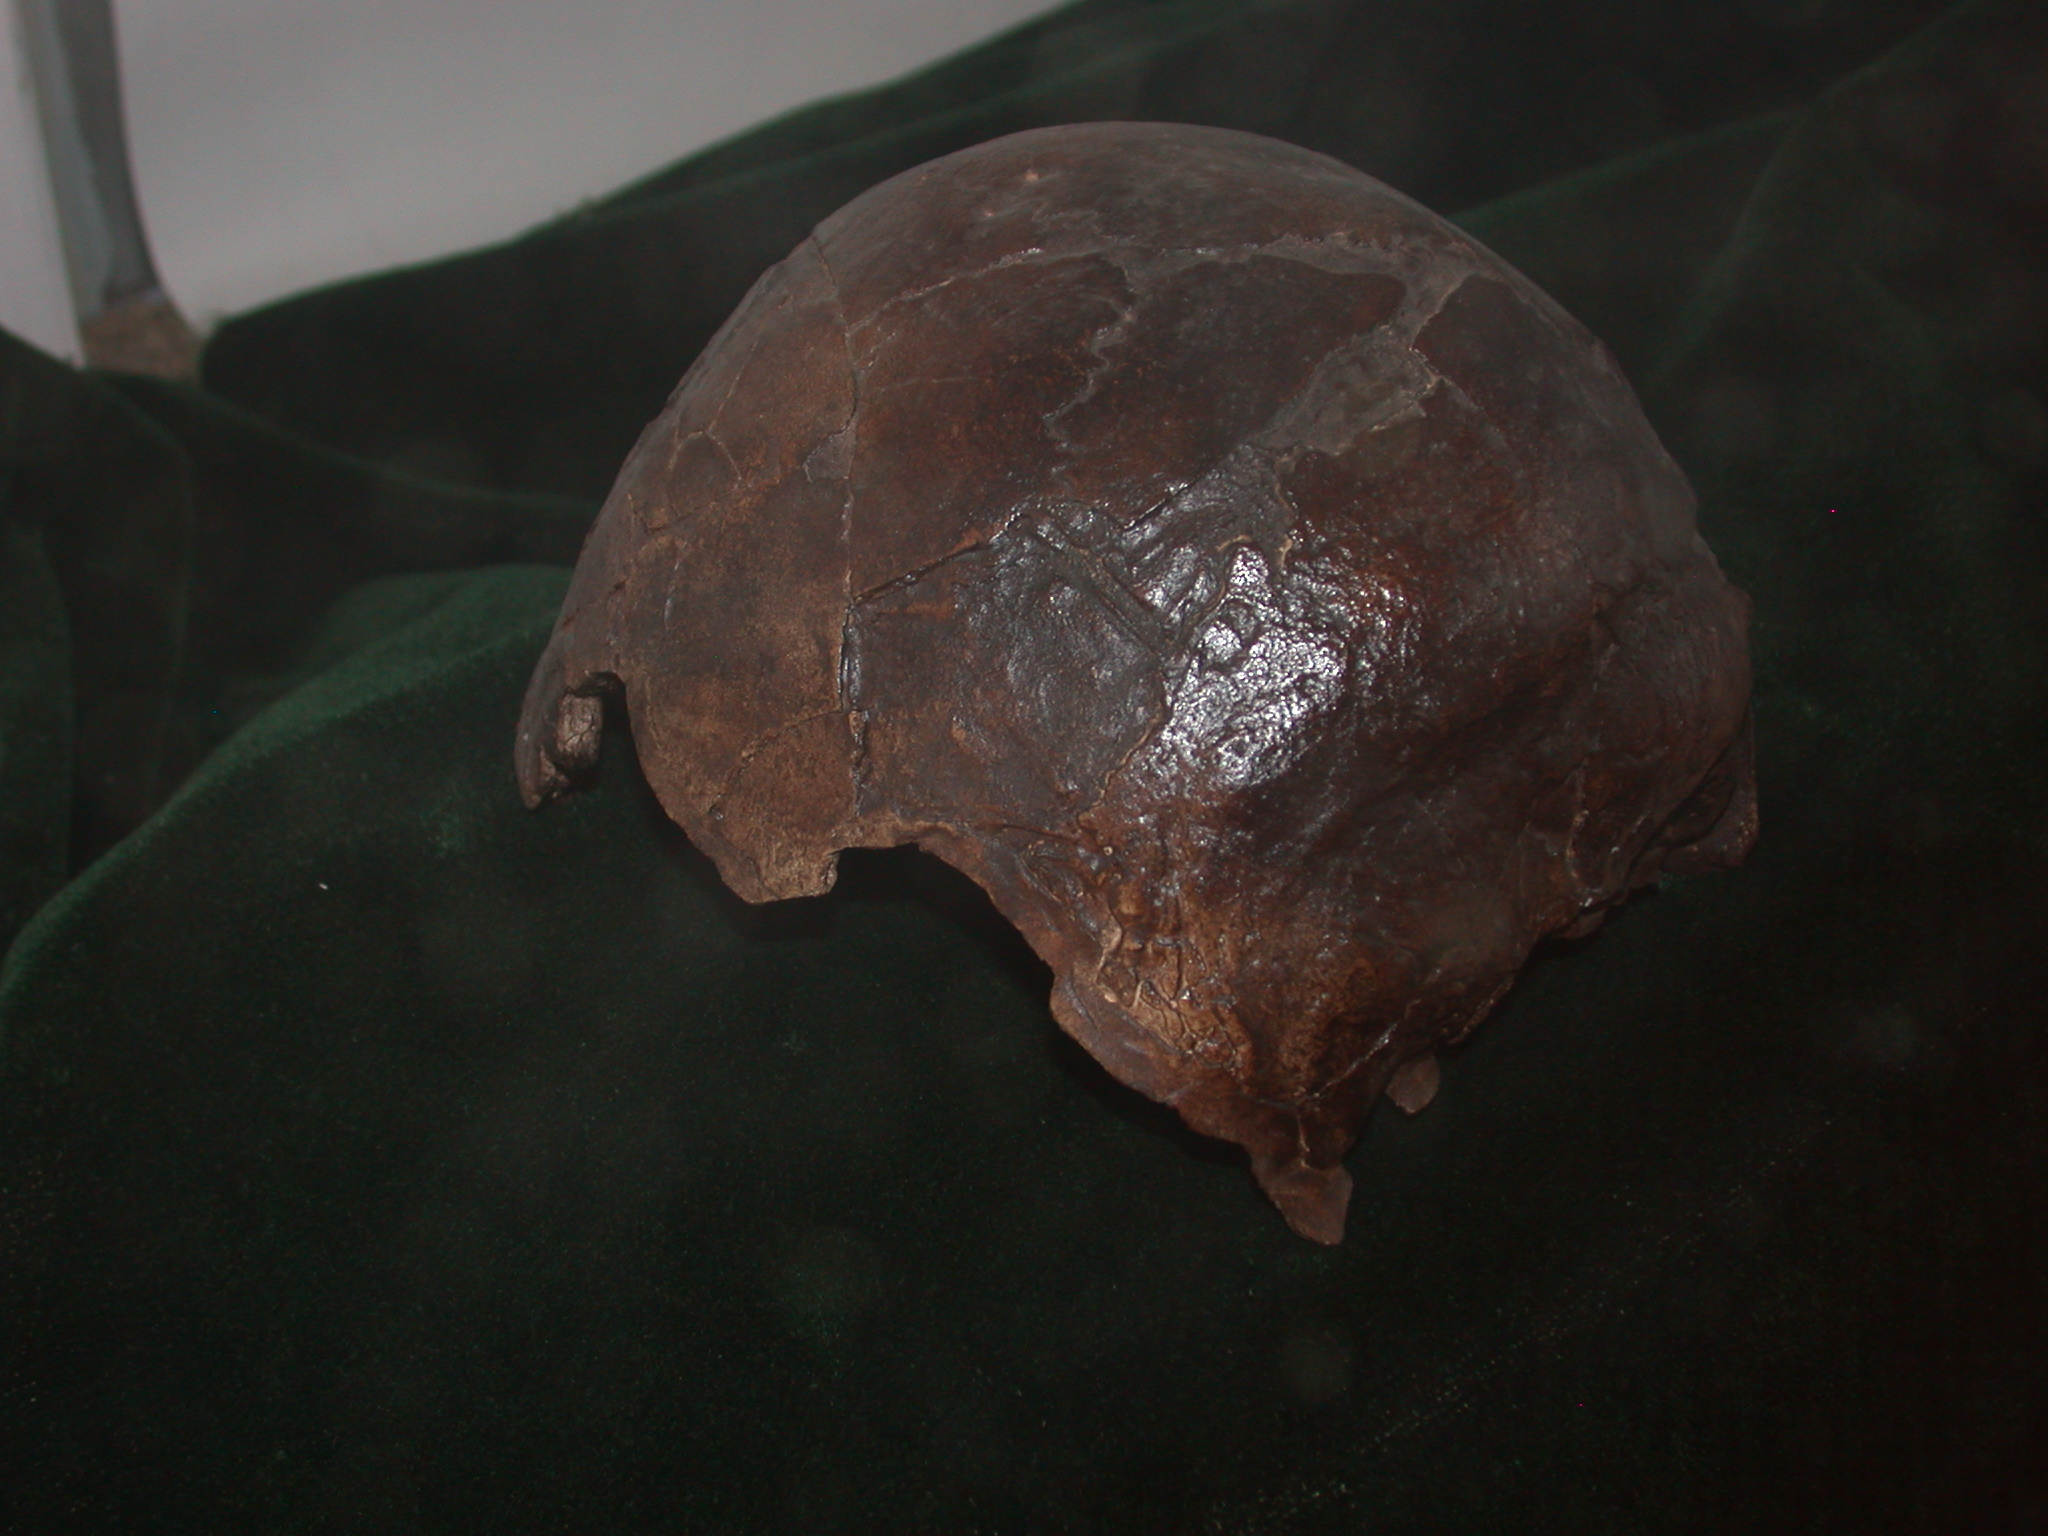 Omo I Homo Sapiens Skull Replica View 2 at National Museum, Addis Ababa, Ethiopia